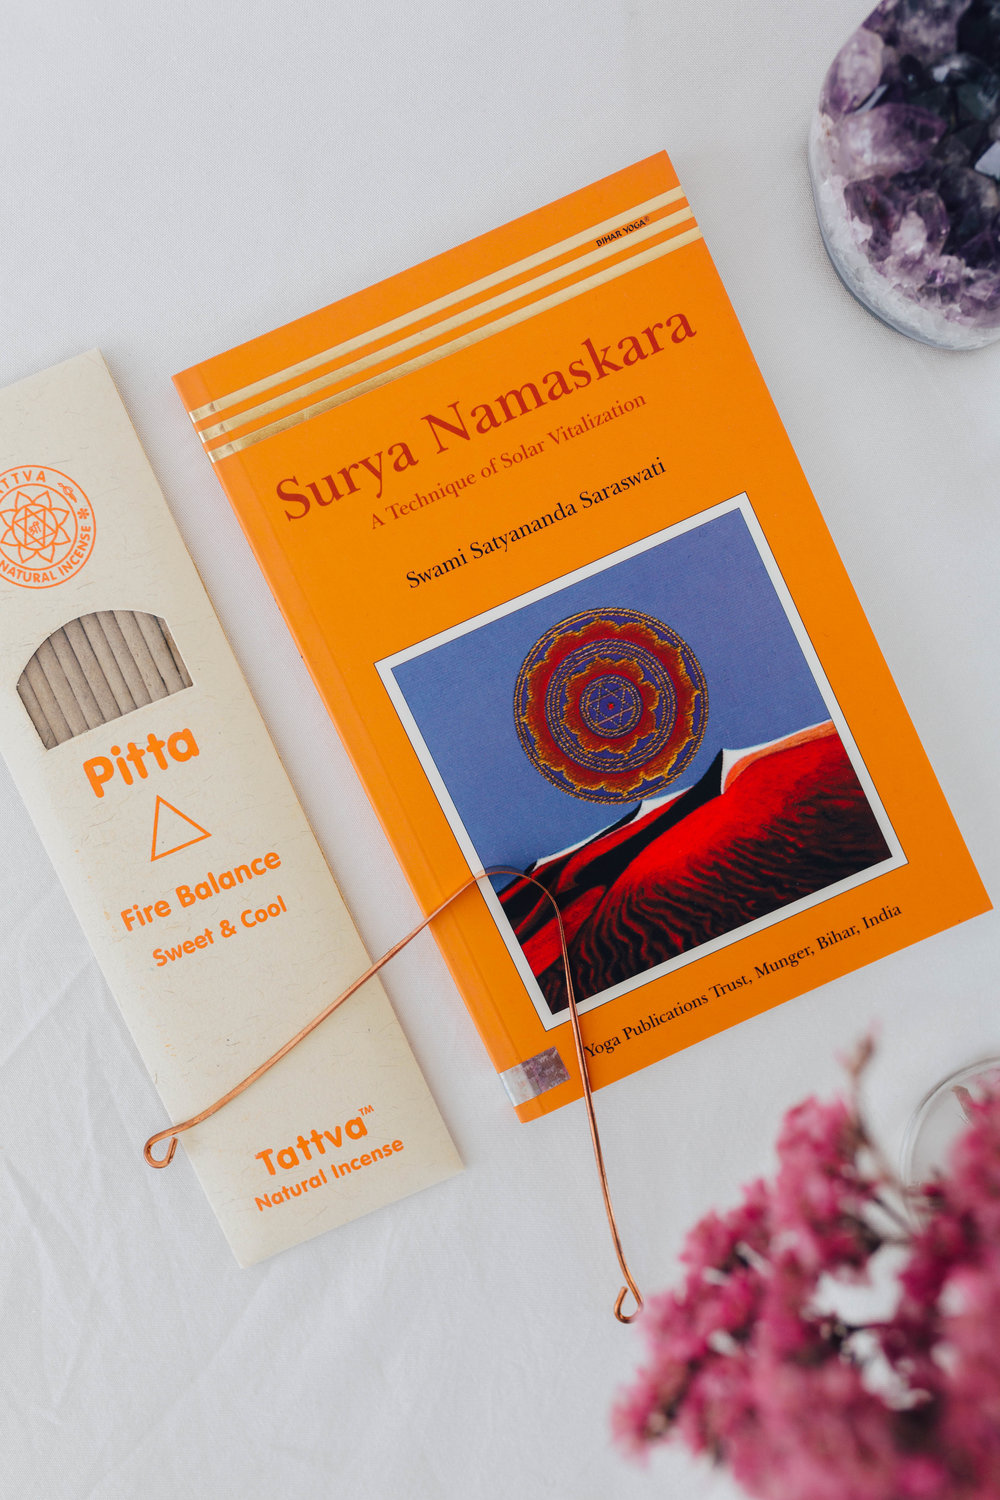 --- $25 gift ---- + 'Surya Namaskara' book - the art and science of Sun Salutations (an amazing book) + Pitta incense + Copper Tongue Scraper